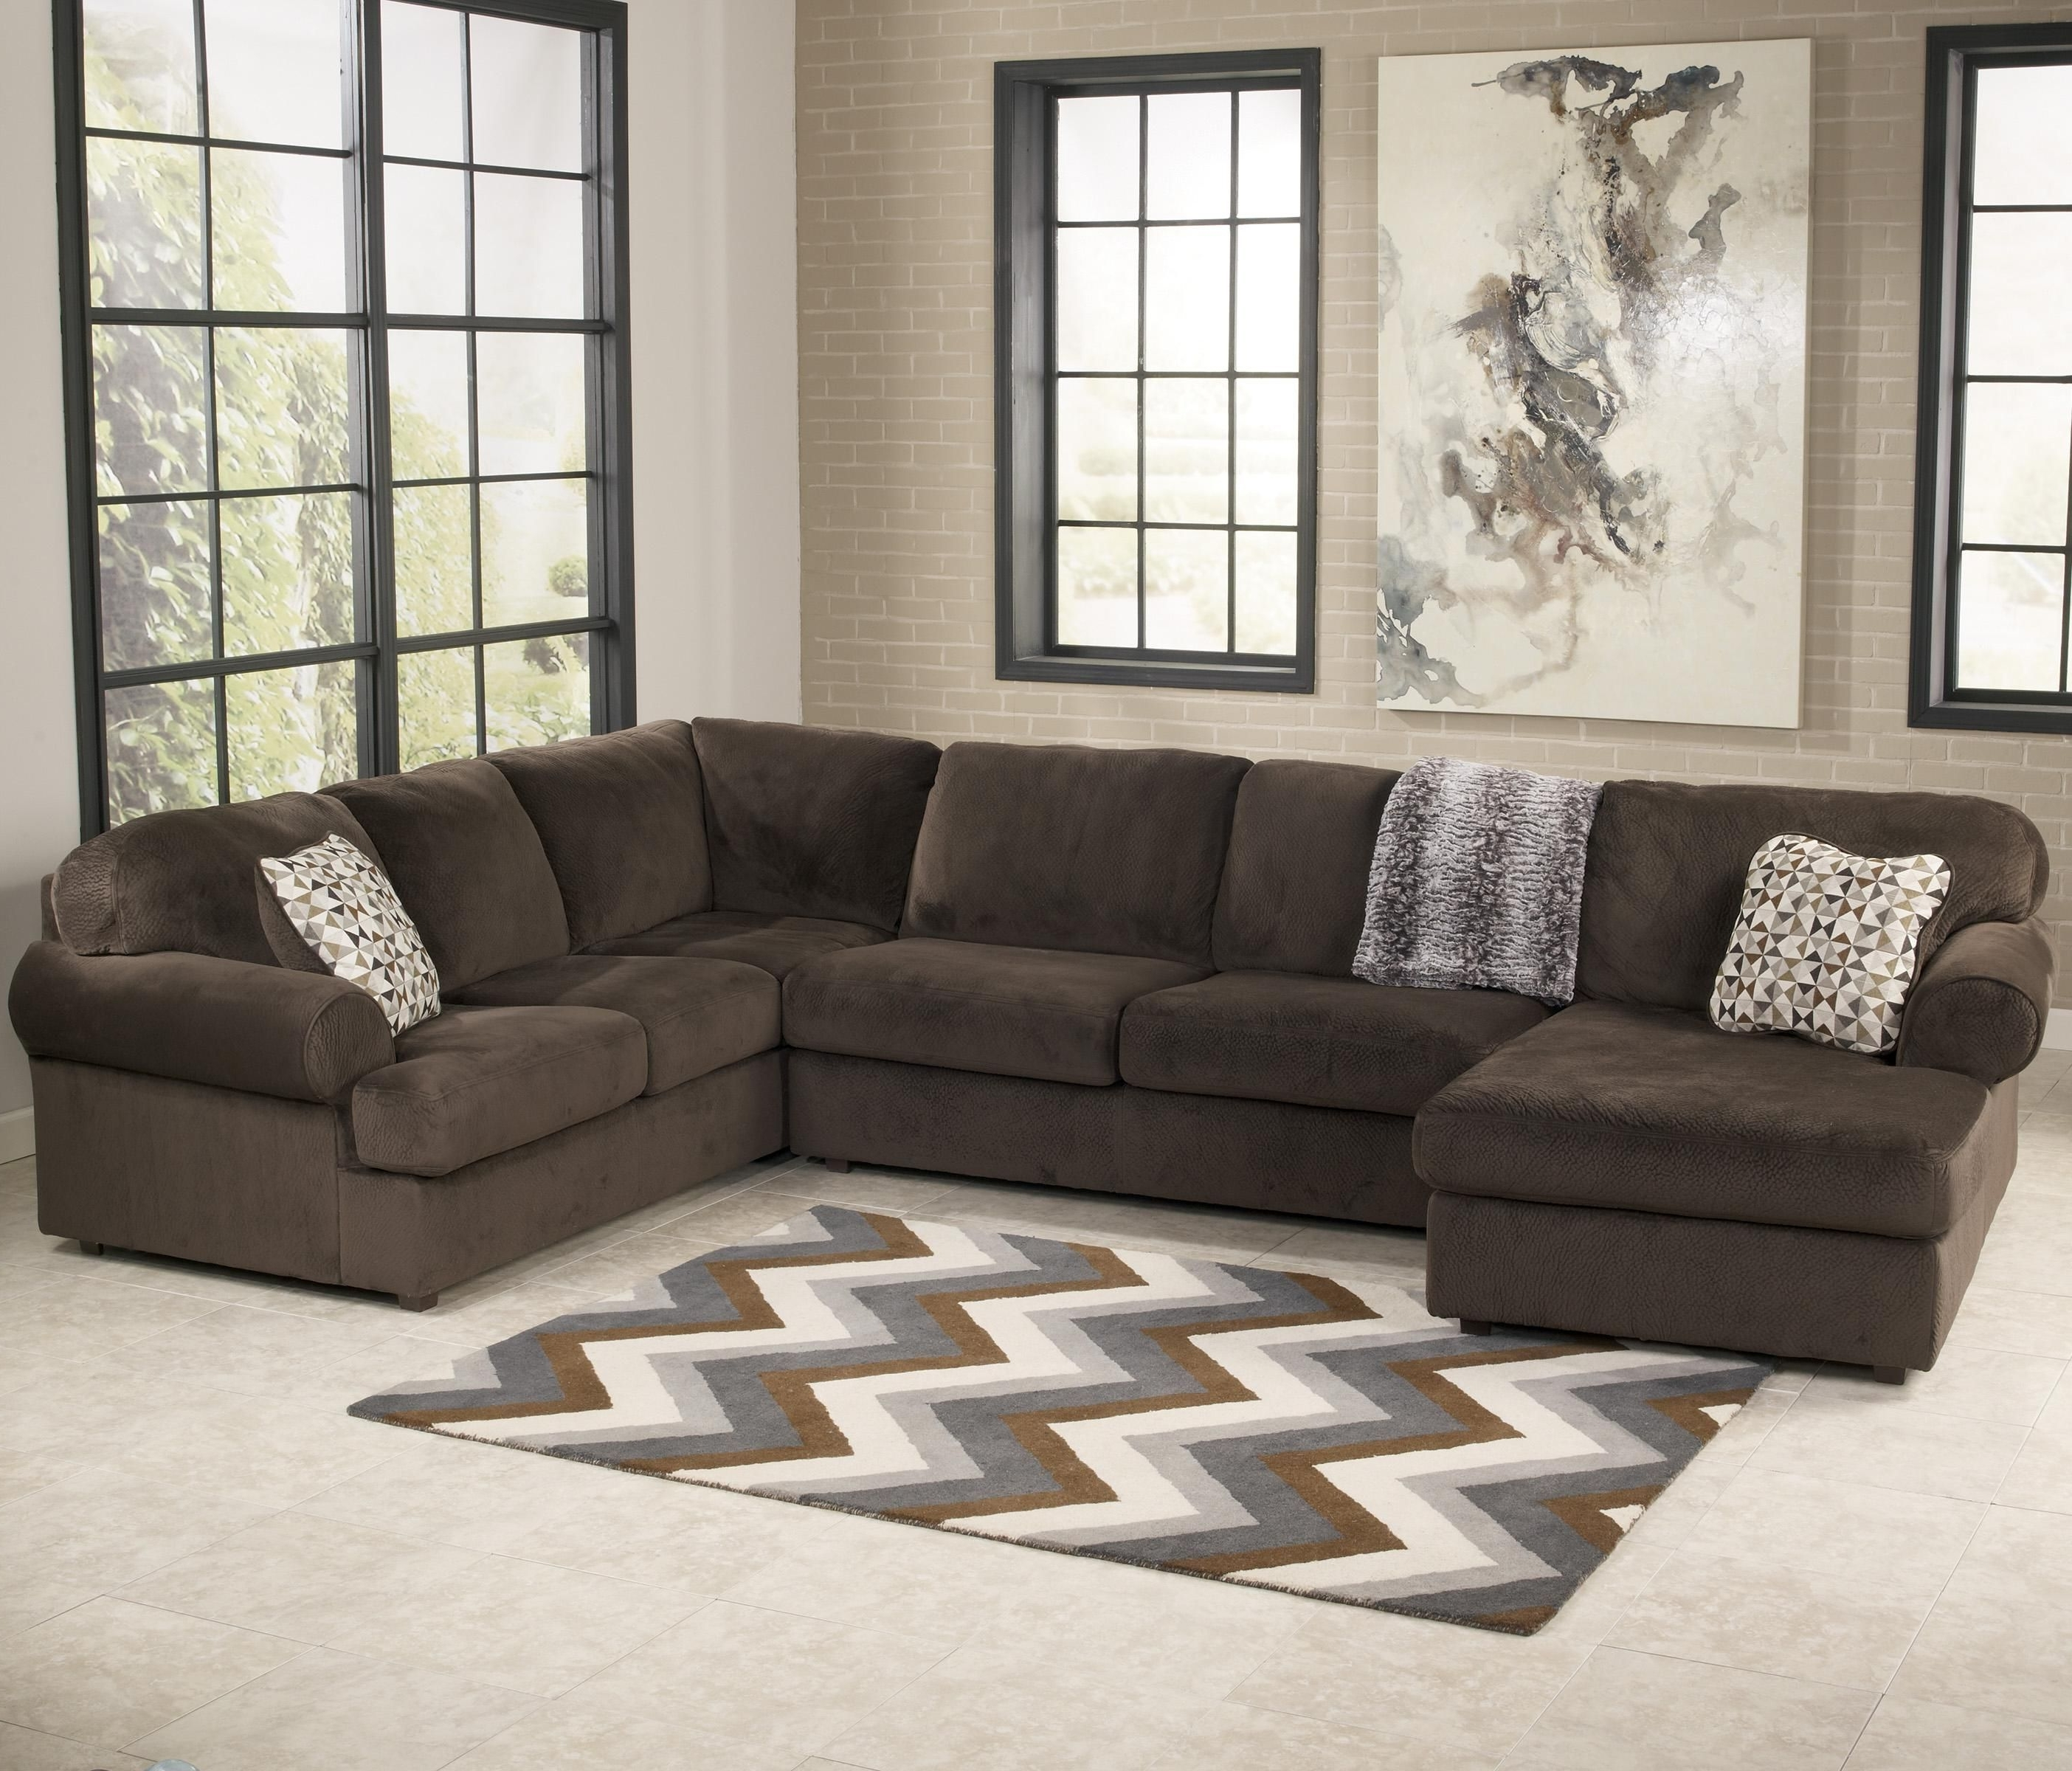 Jessa Place – Chocolate Casual Sectional Sofa With Left Chaise In Most Recently Released Jackson Ms Sectional Sofas (Gallery 7 of 20)